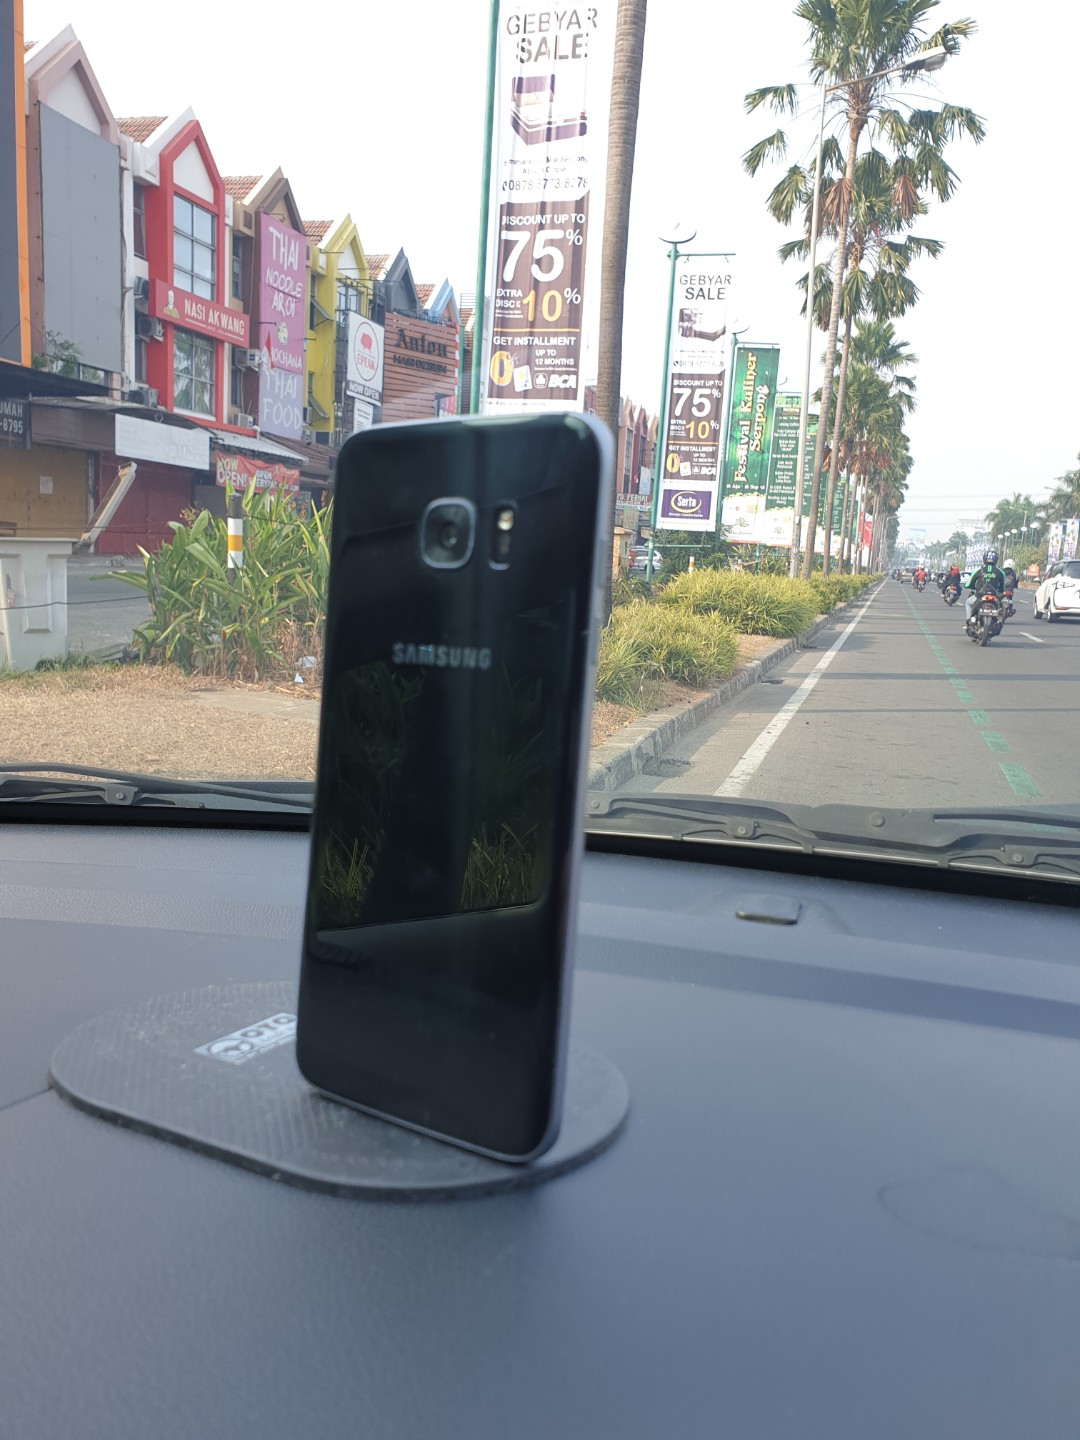 Jual Samsung S7 Edge Black 32gb Mobile Phones Tablets Android On Carousell